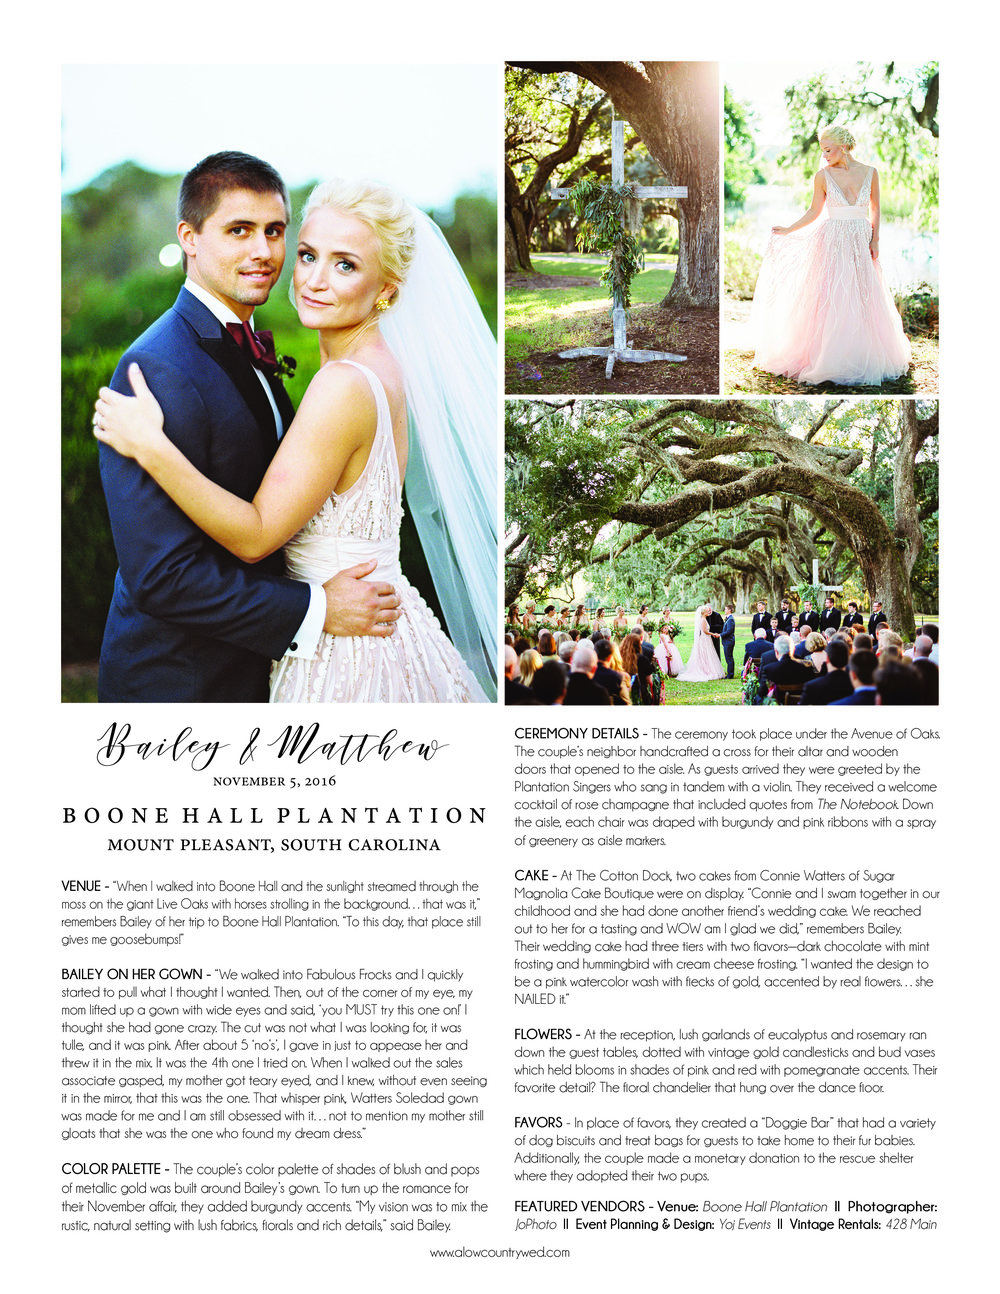 A Lowcountry Wedding Magazine Announcements